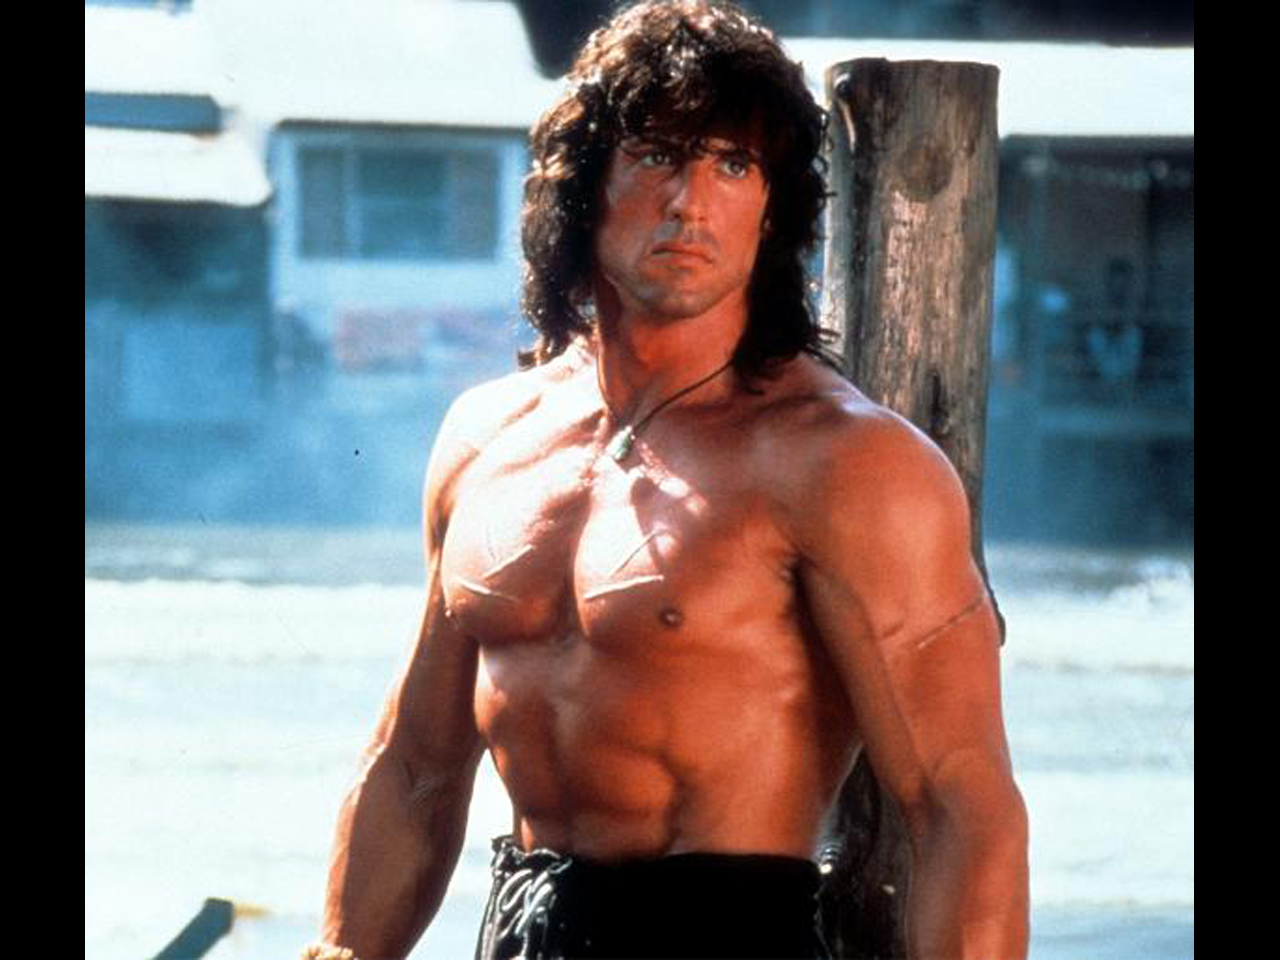 The Upcoming Rambo Reboot Aims To Be The New James Bond But Will It Work Without Sylvester Stallone